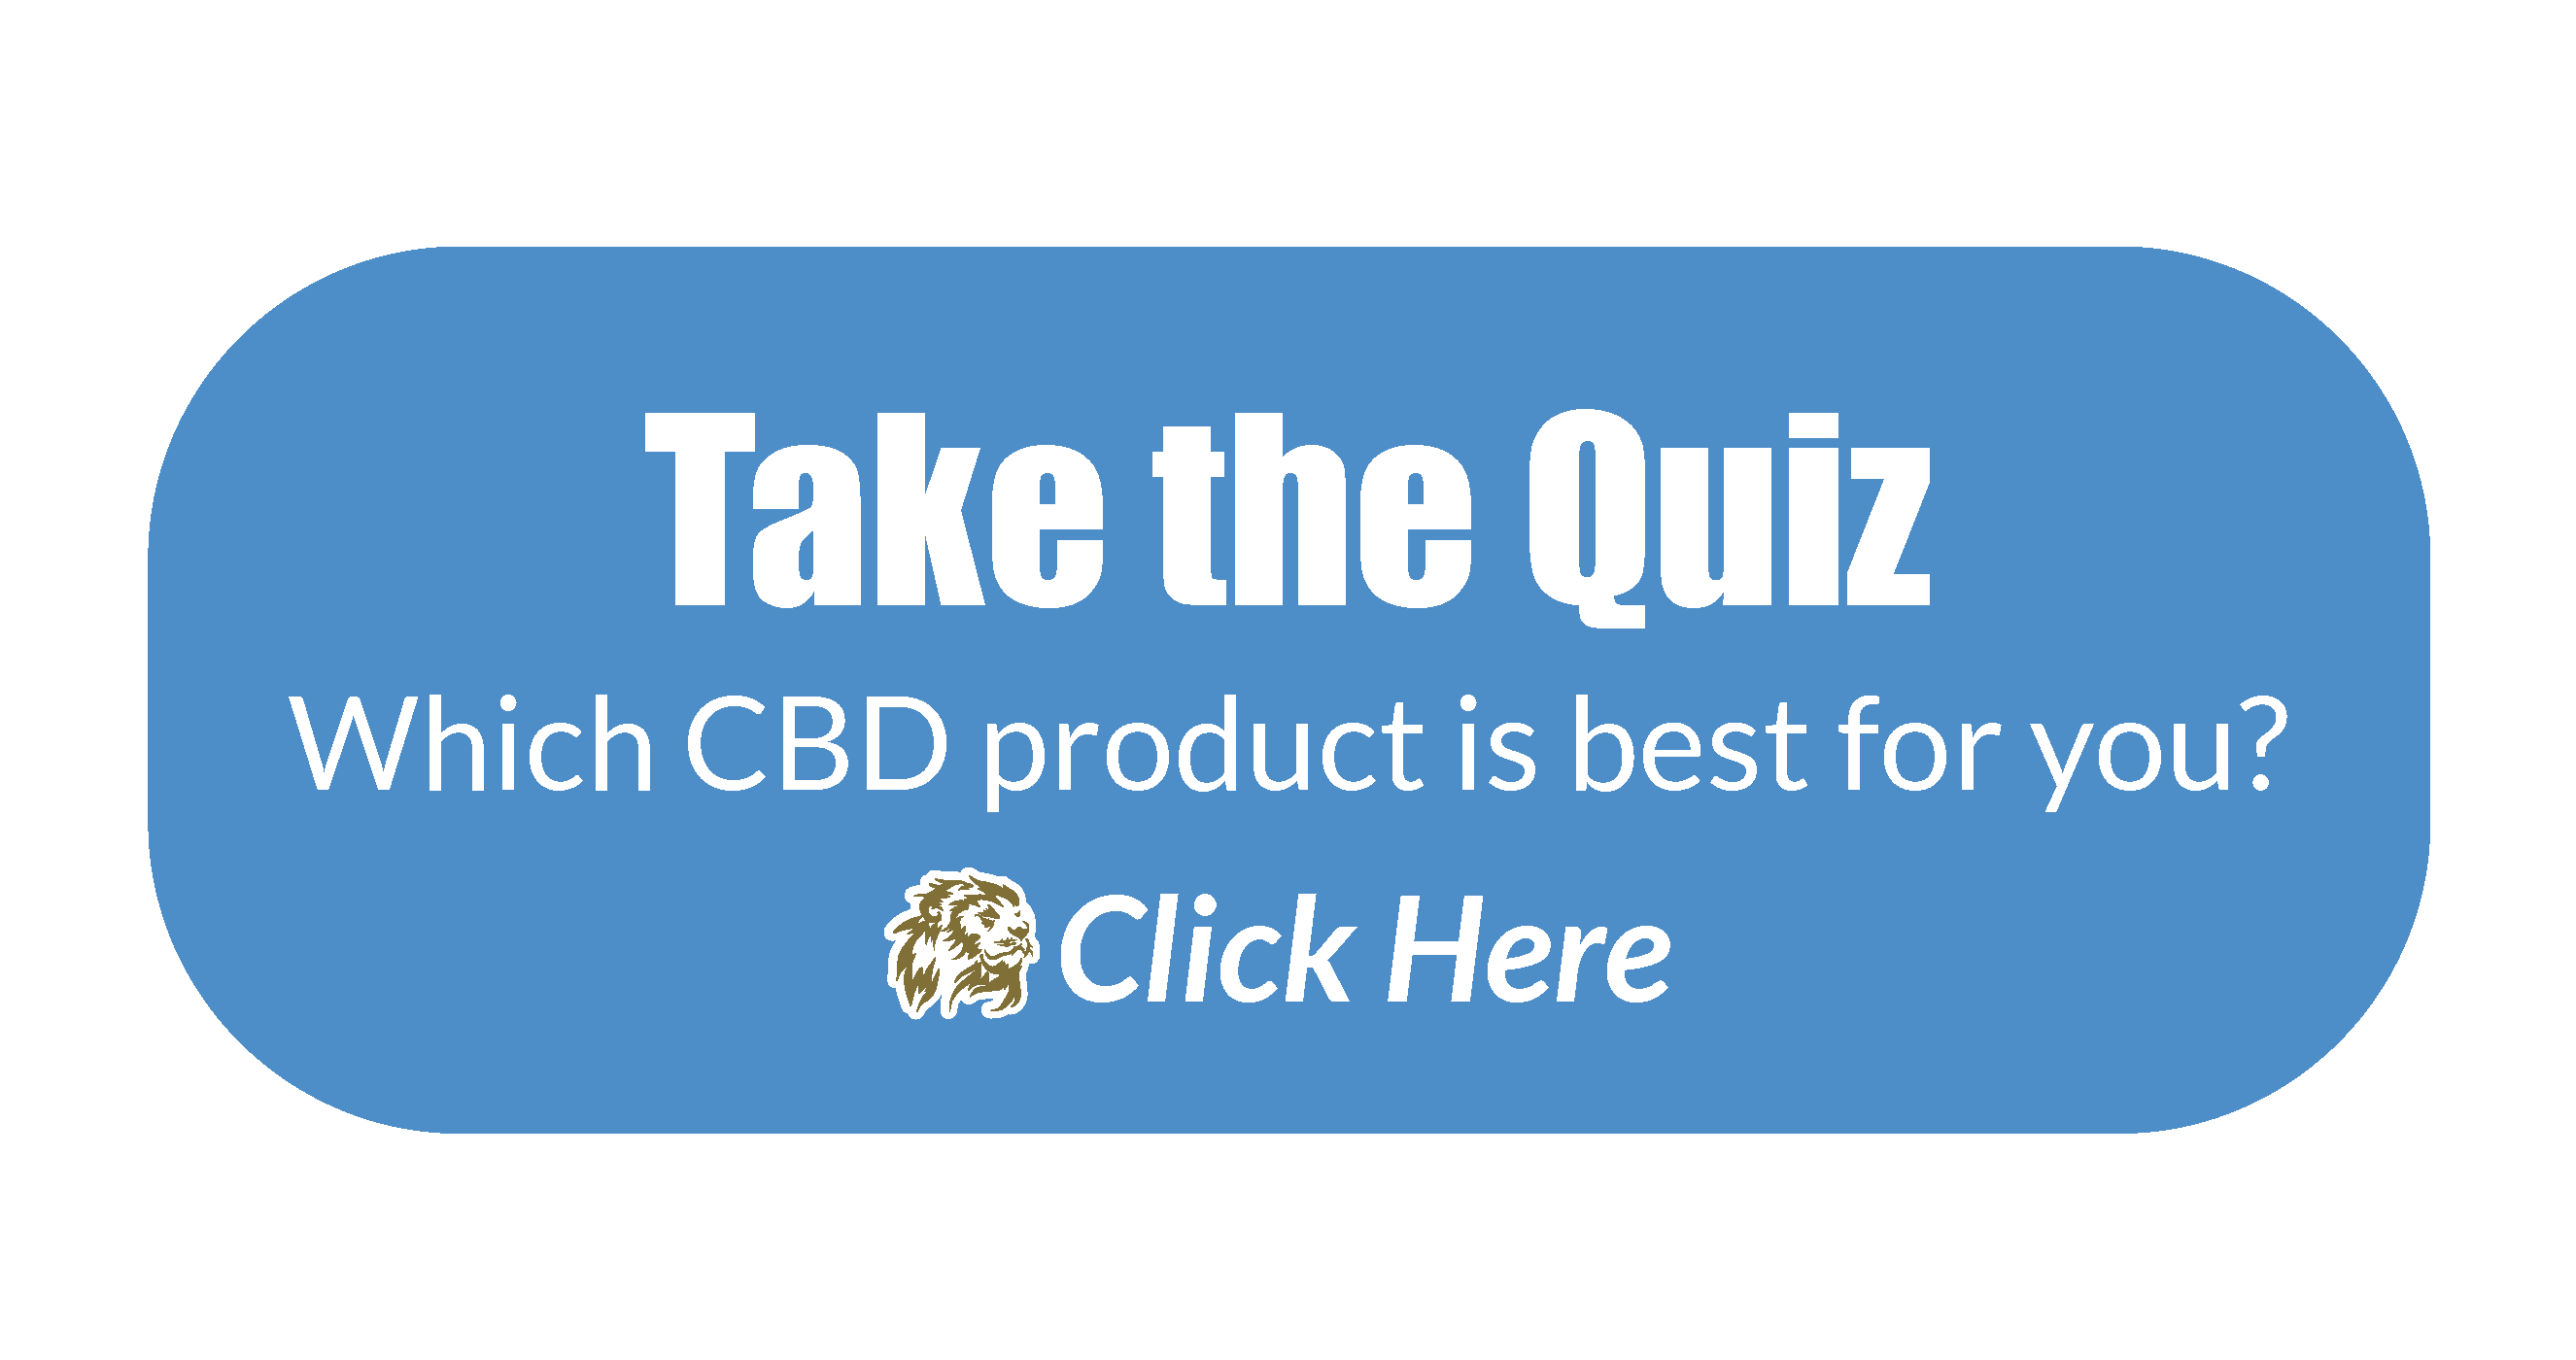 new-cbdlion-quiz-button-home-page-03.png